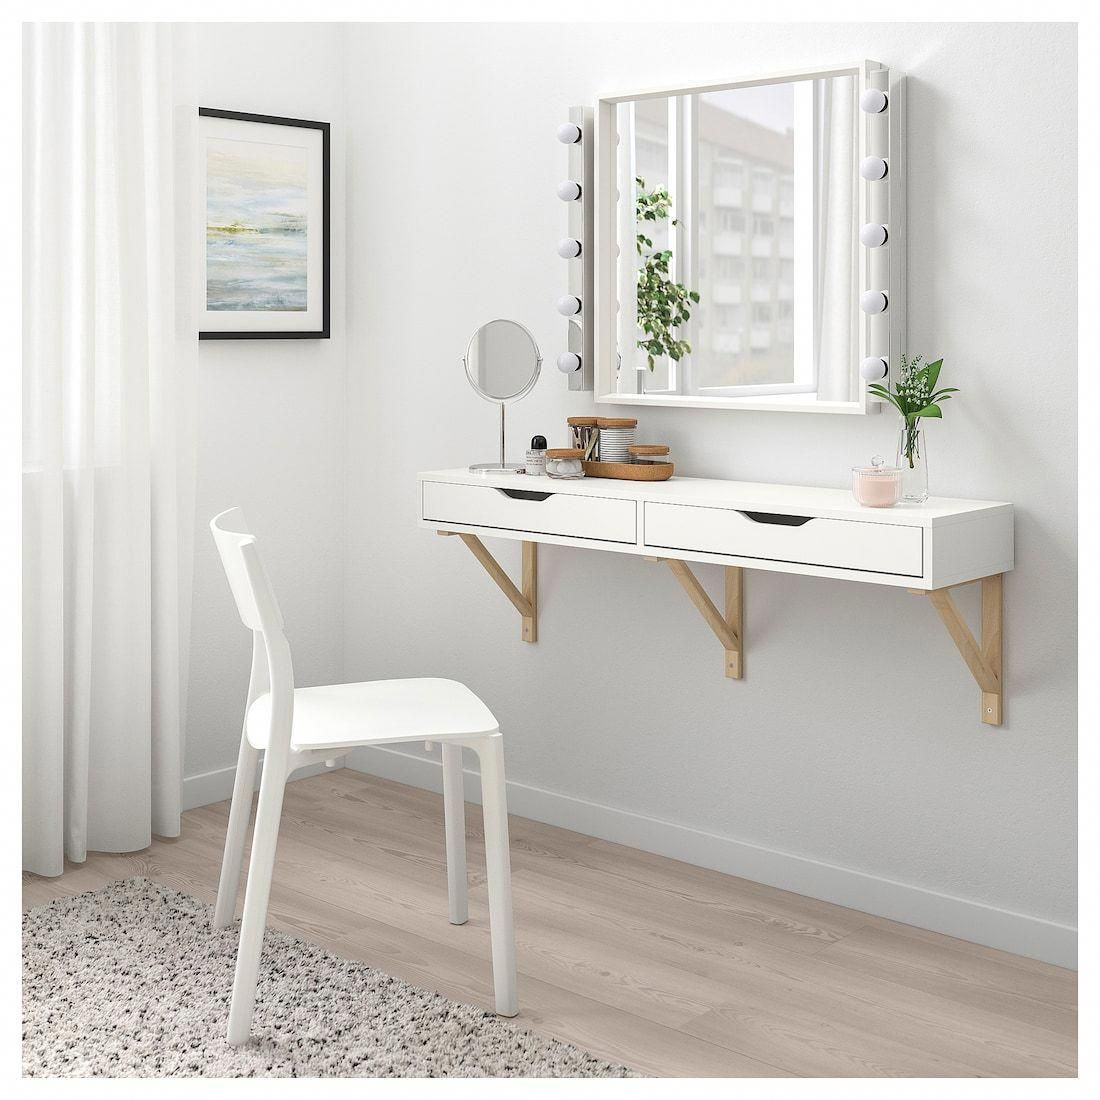 Ekby Alex Shelf With Drawers White Ikea Ikeabedroomideas